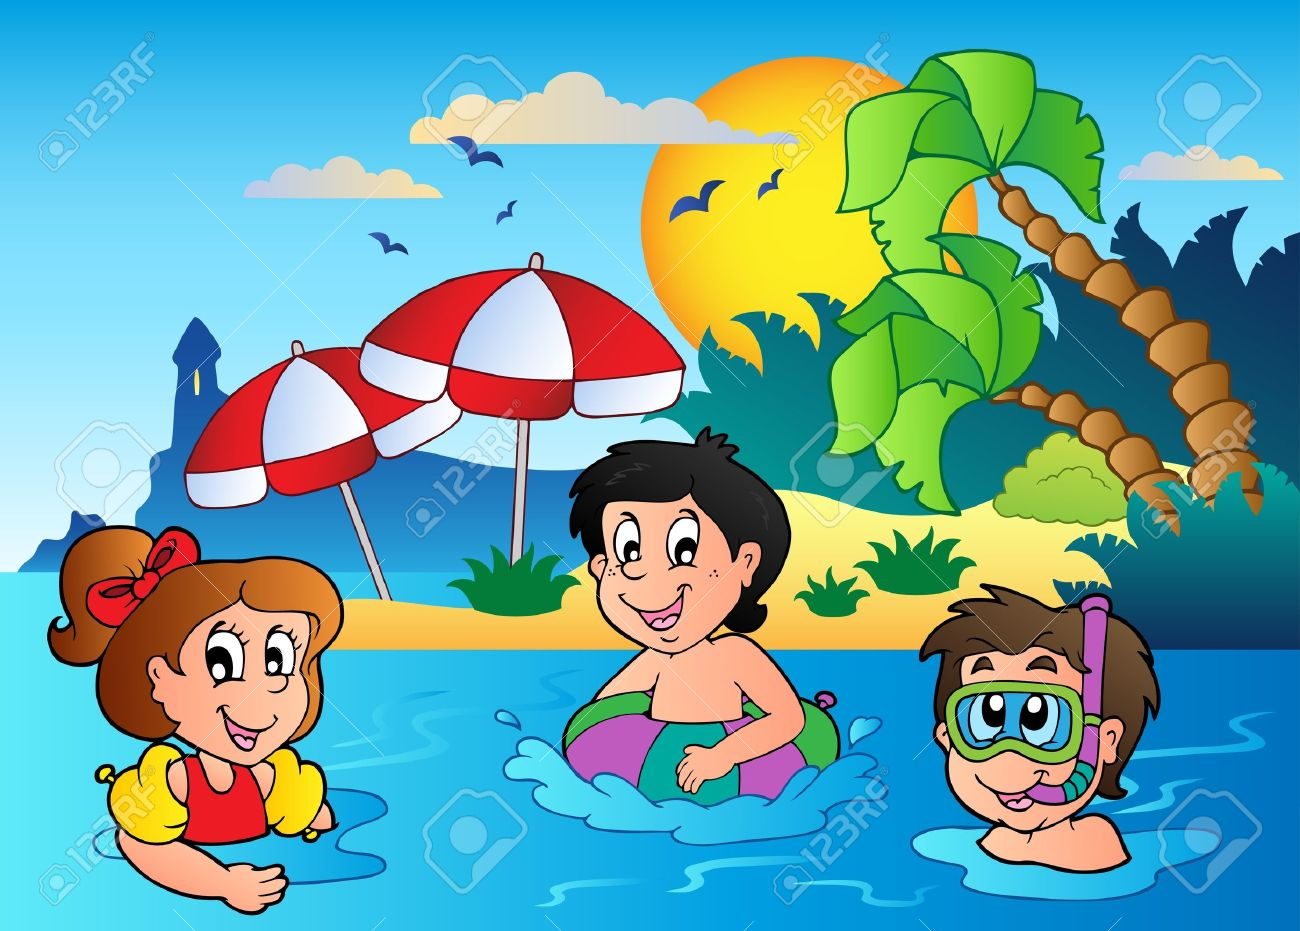 Kids Beach Clipart Summer Theme Image 2 Vector Illustration Stock 10107500